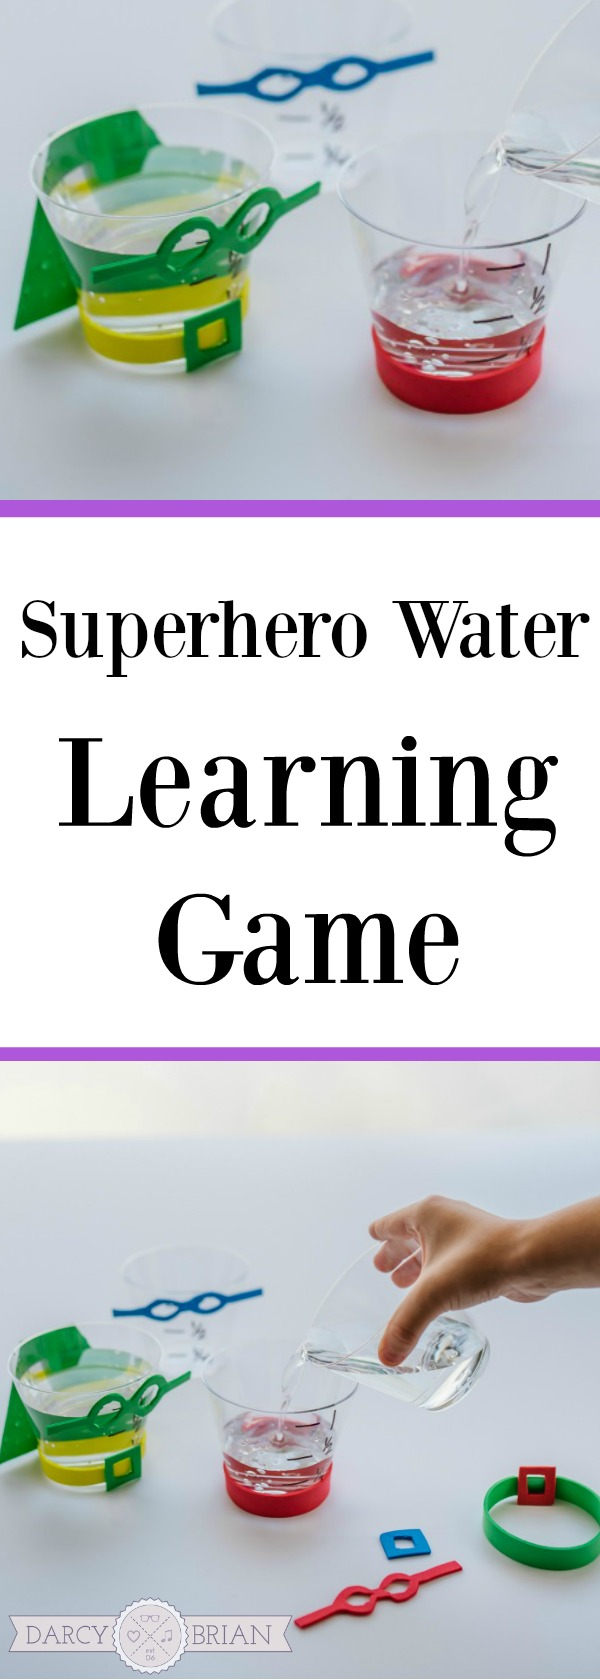 Do your kids love pretending to be a superhero? This Superhero Water game is a fun kids activity that will help teach units of measurement as they pour water. It also encourages creativity as they add super powers. This learning game is loads of fun and simple to set up.